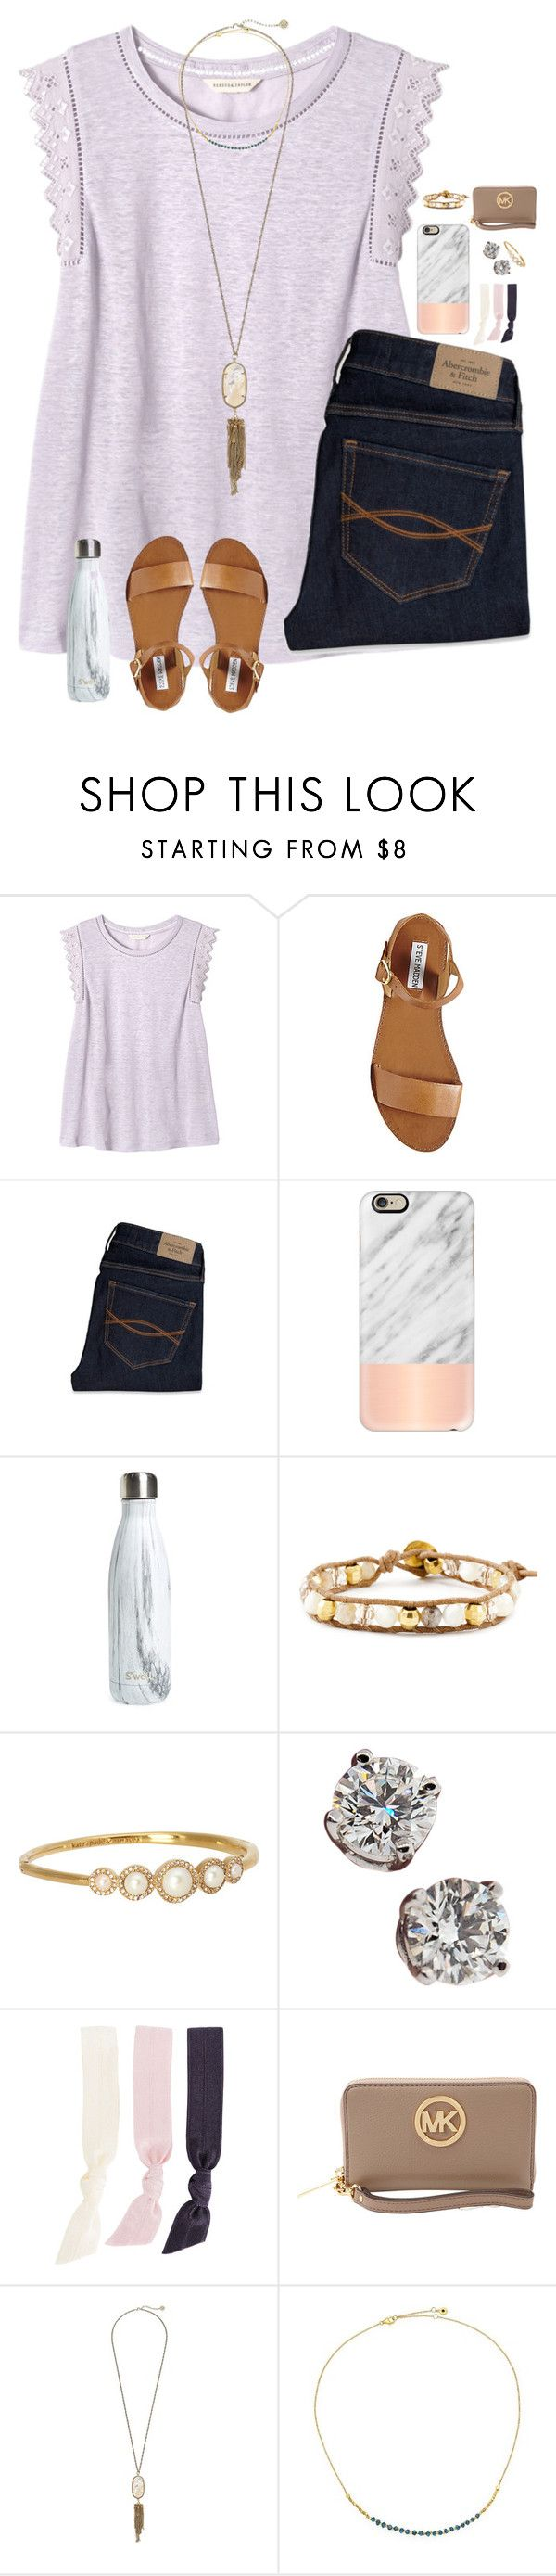 """overflow montgomery 2016!!"" by melaniebethc ❤ liked on Polyvore featuring Rebecca Taylor, Steve Madden, Abercrombie & Fitch, Casetify, S'well, Chan Luu, Kate Spade, Tiffany & Co., Splendid and MICHAEL Michael Kors"